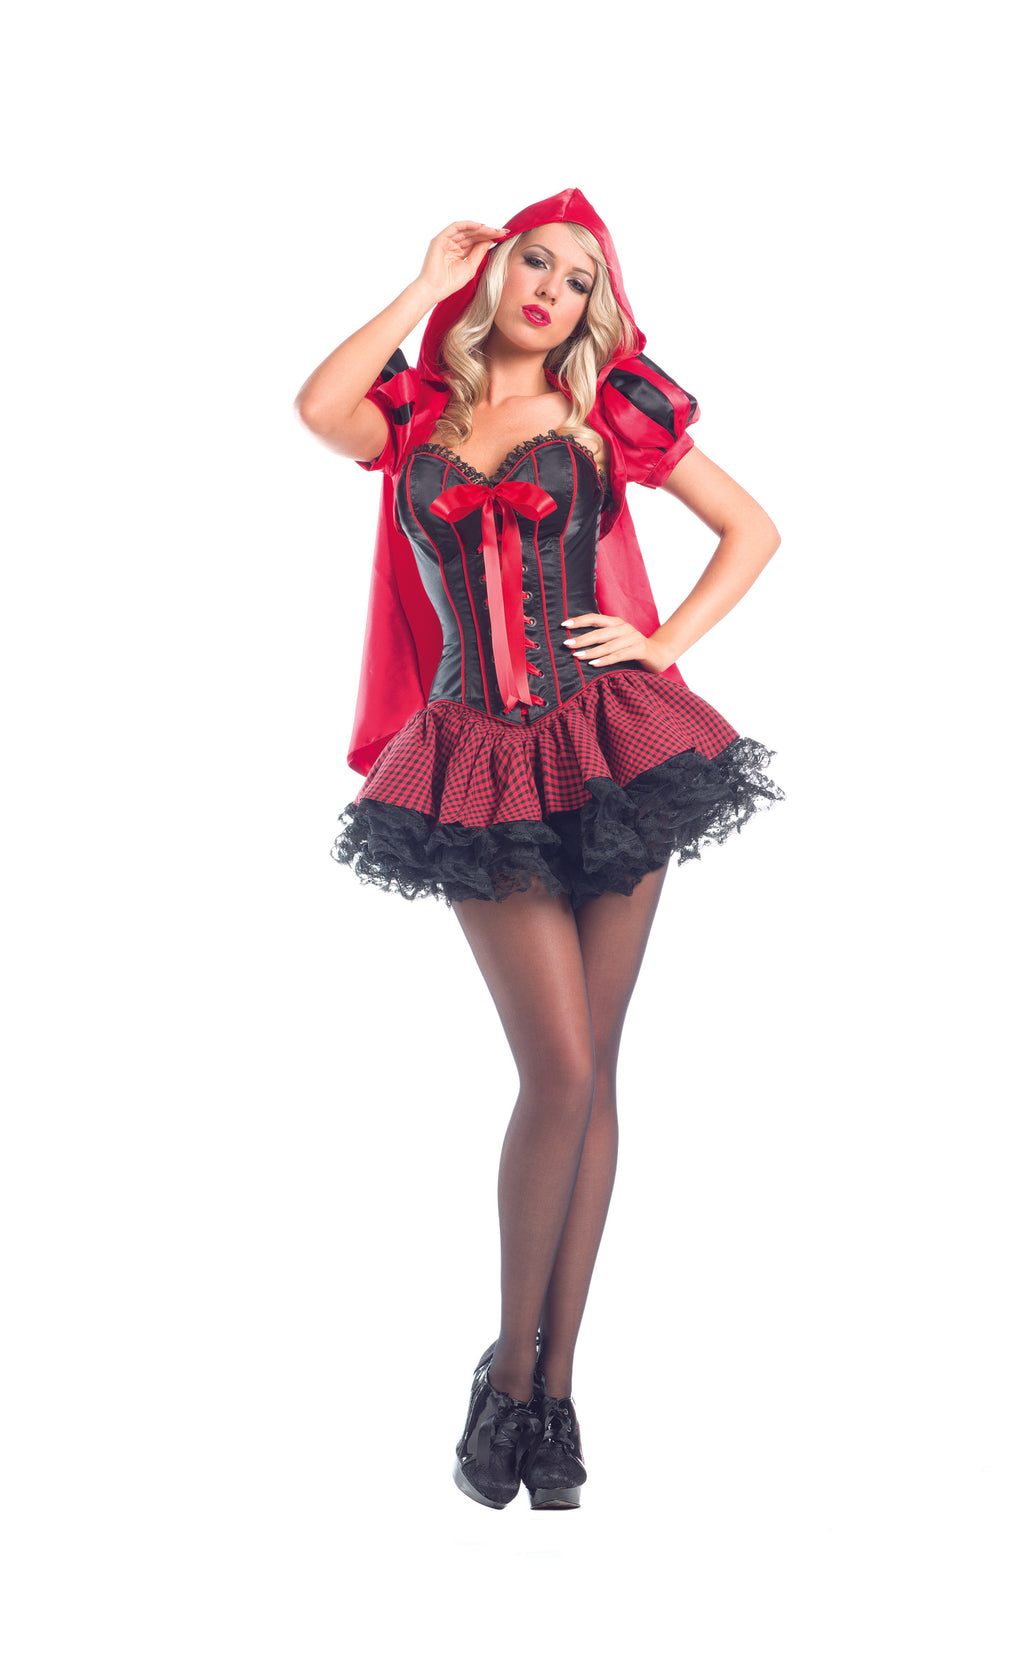 Adult-Women's-6-Piece-Red-Riding-Hood-Corset-Peplum-Dress-Halloween-Party-Costume